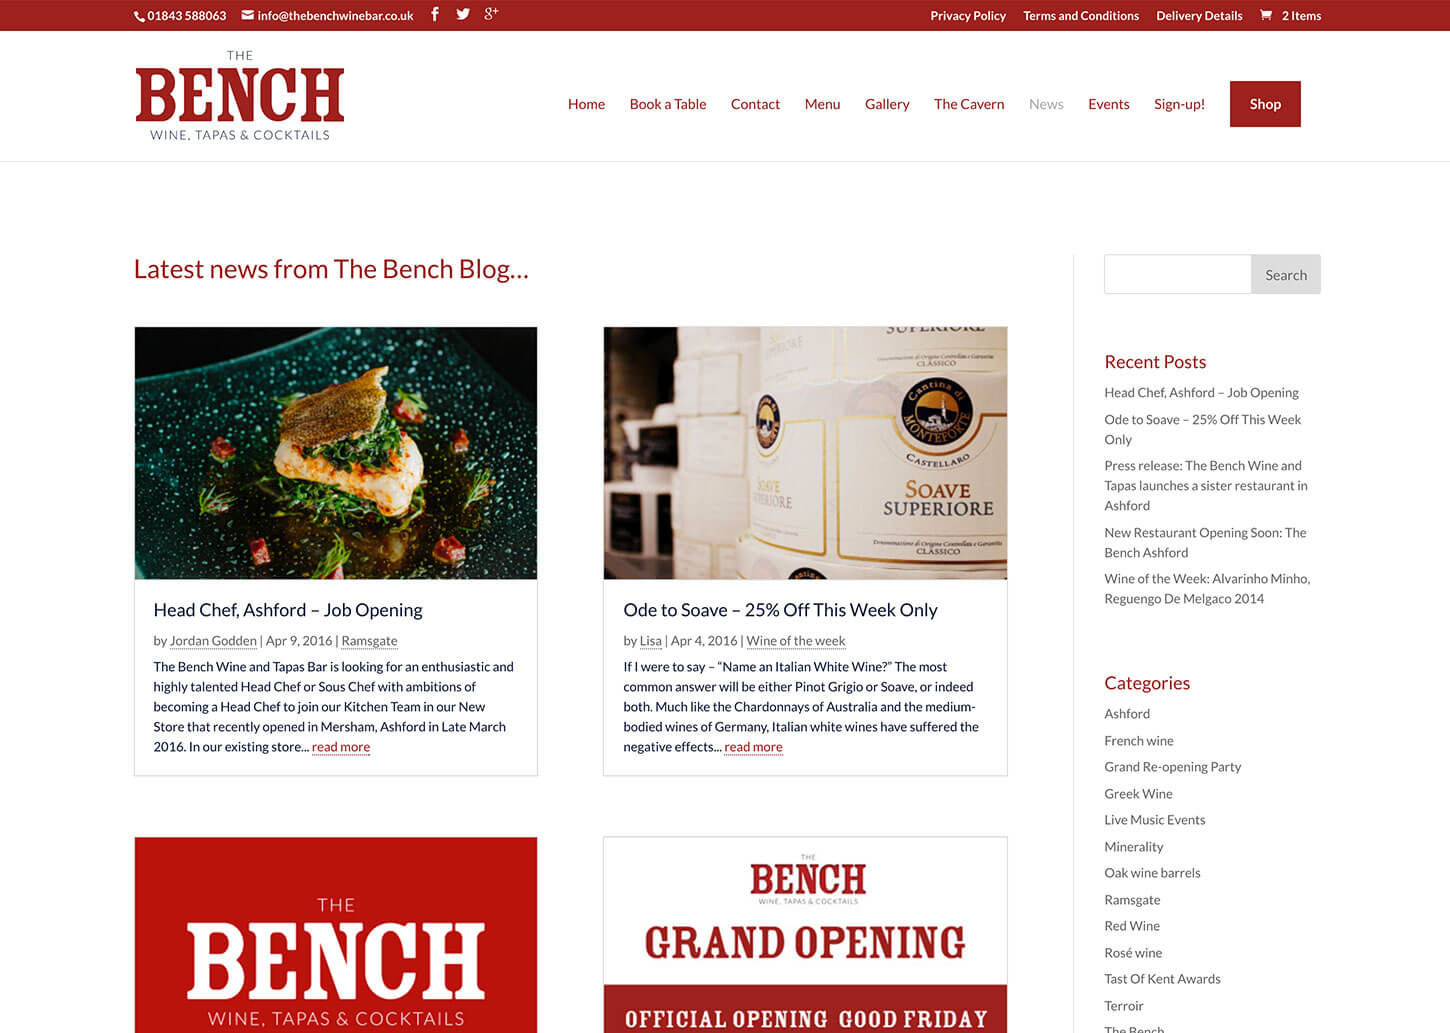 The Bench Restaurant website design - News / Blog page